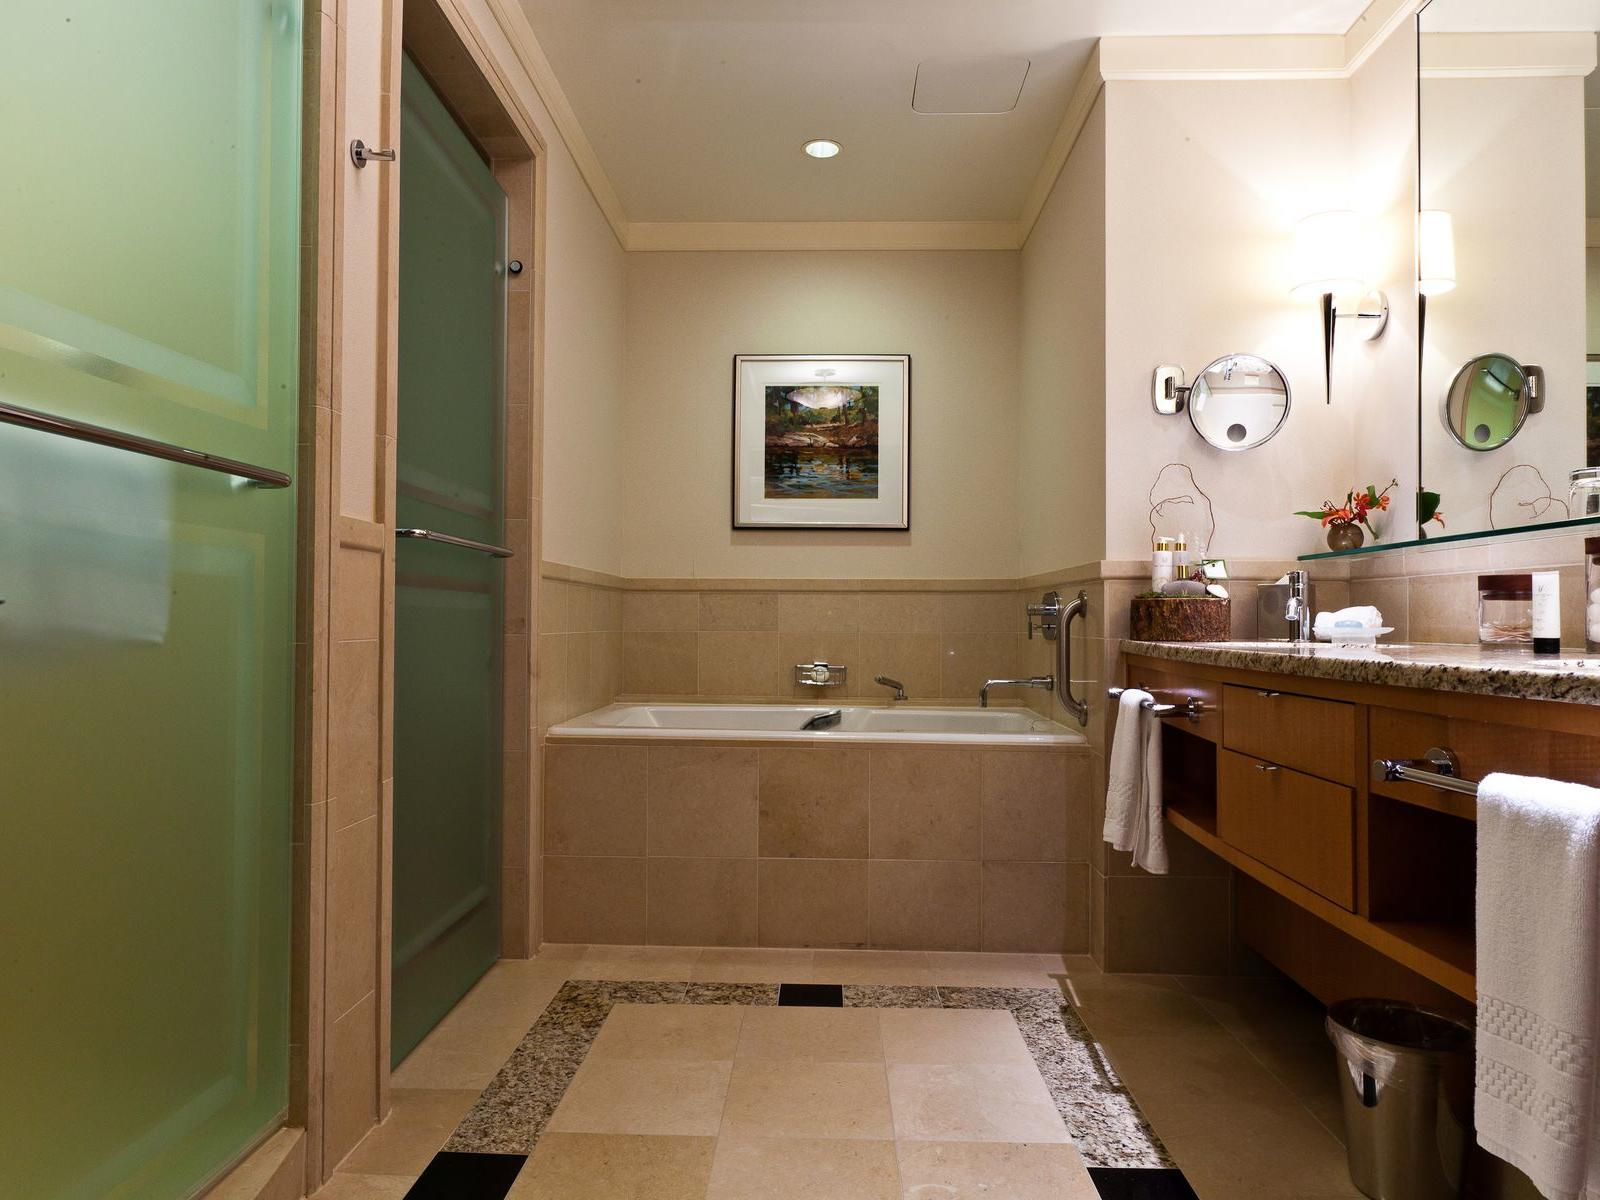 bathroom of hotel room with tub